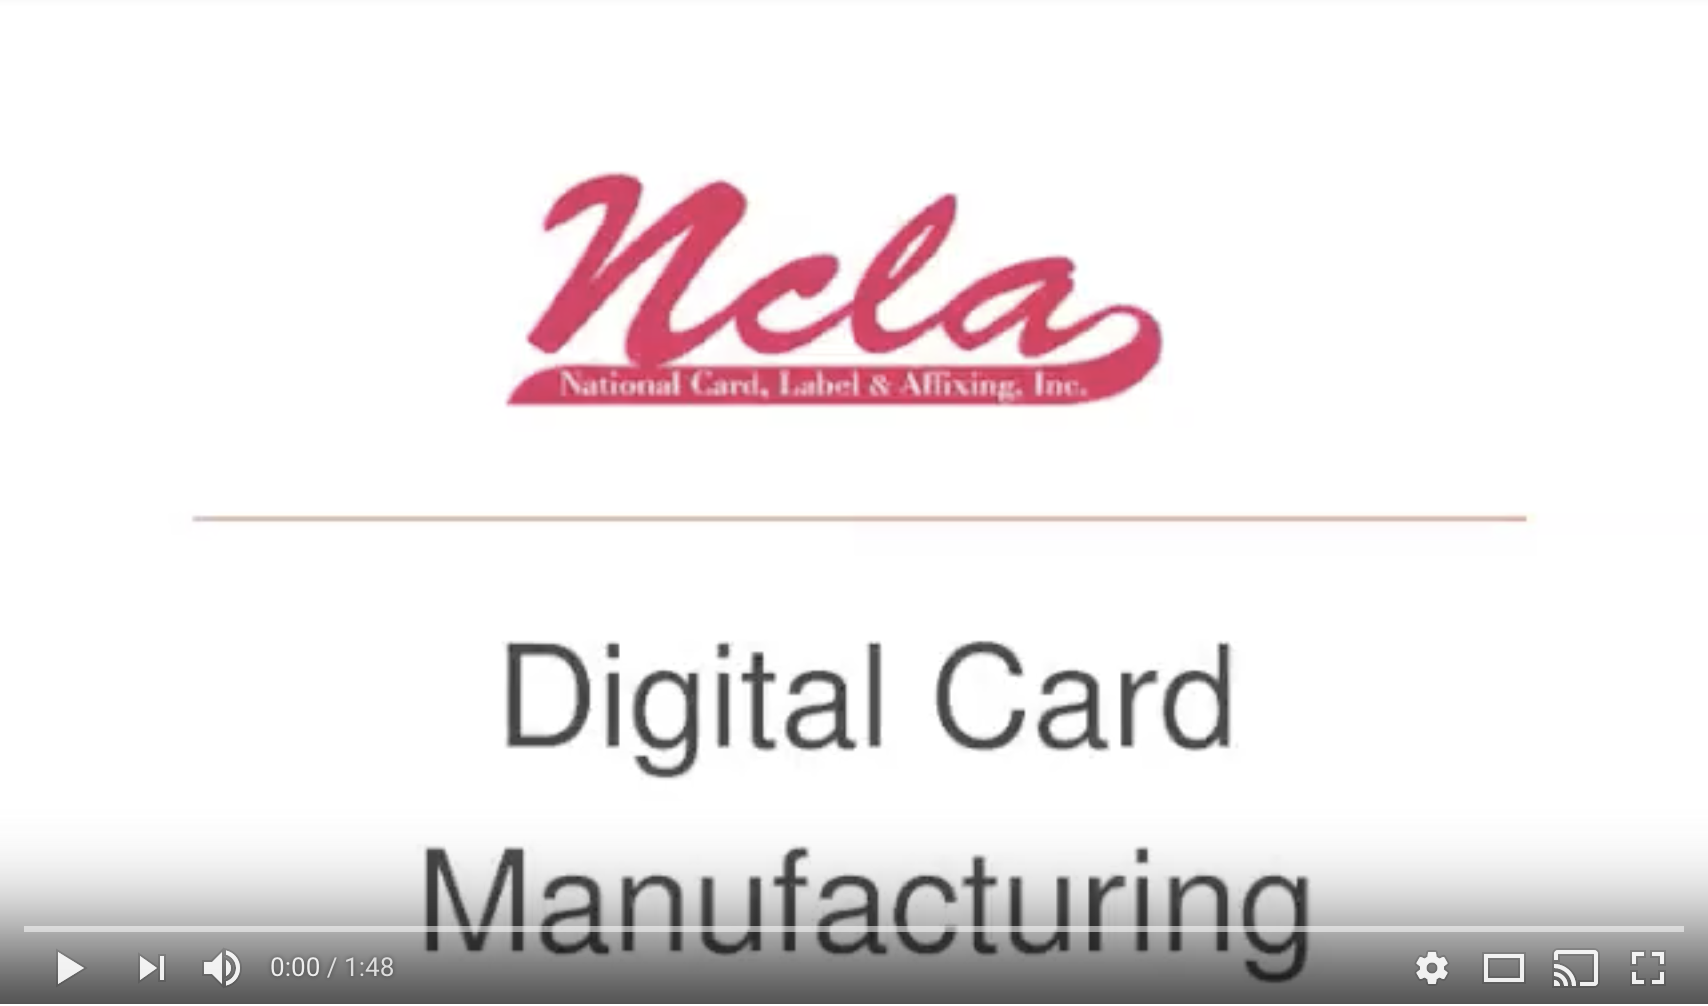 Digital Card Manufacturing